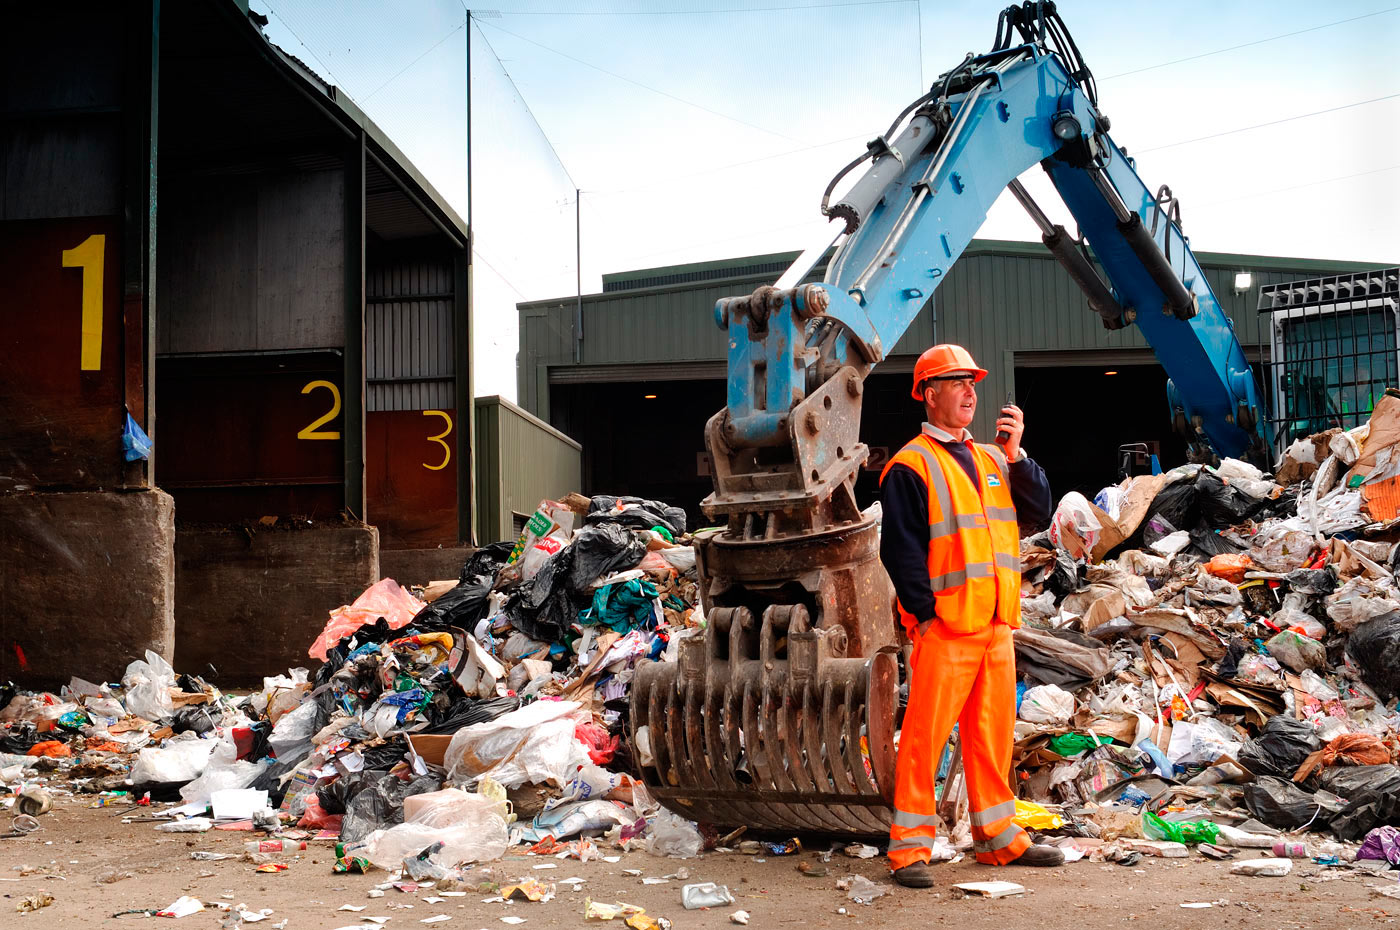 05) borough-of-poole-people-at-work-waste-management-nuffield-photography.jpg